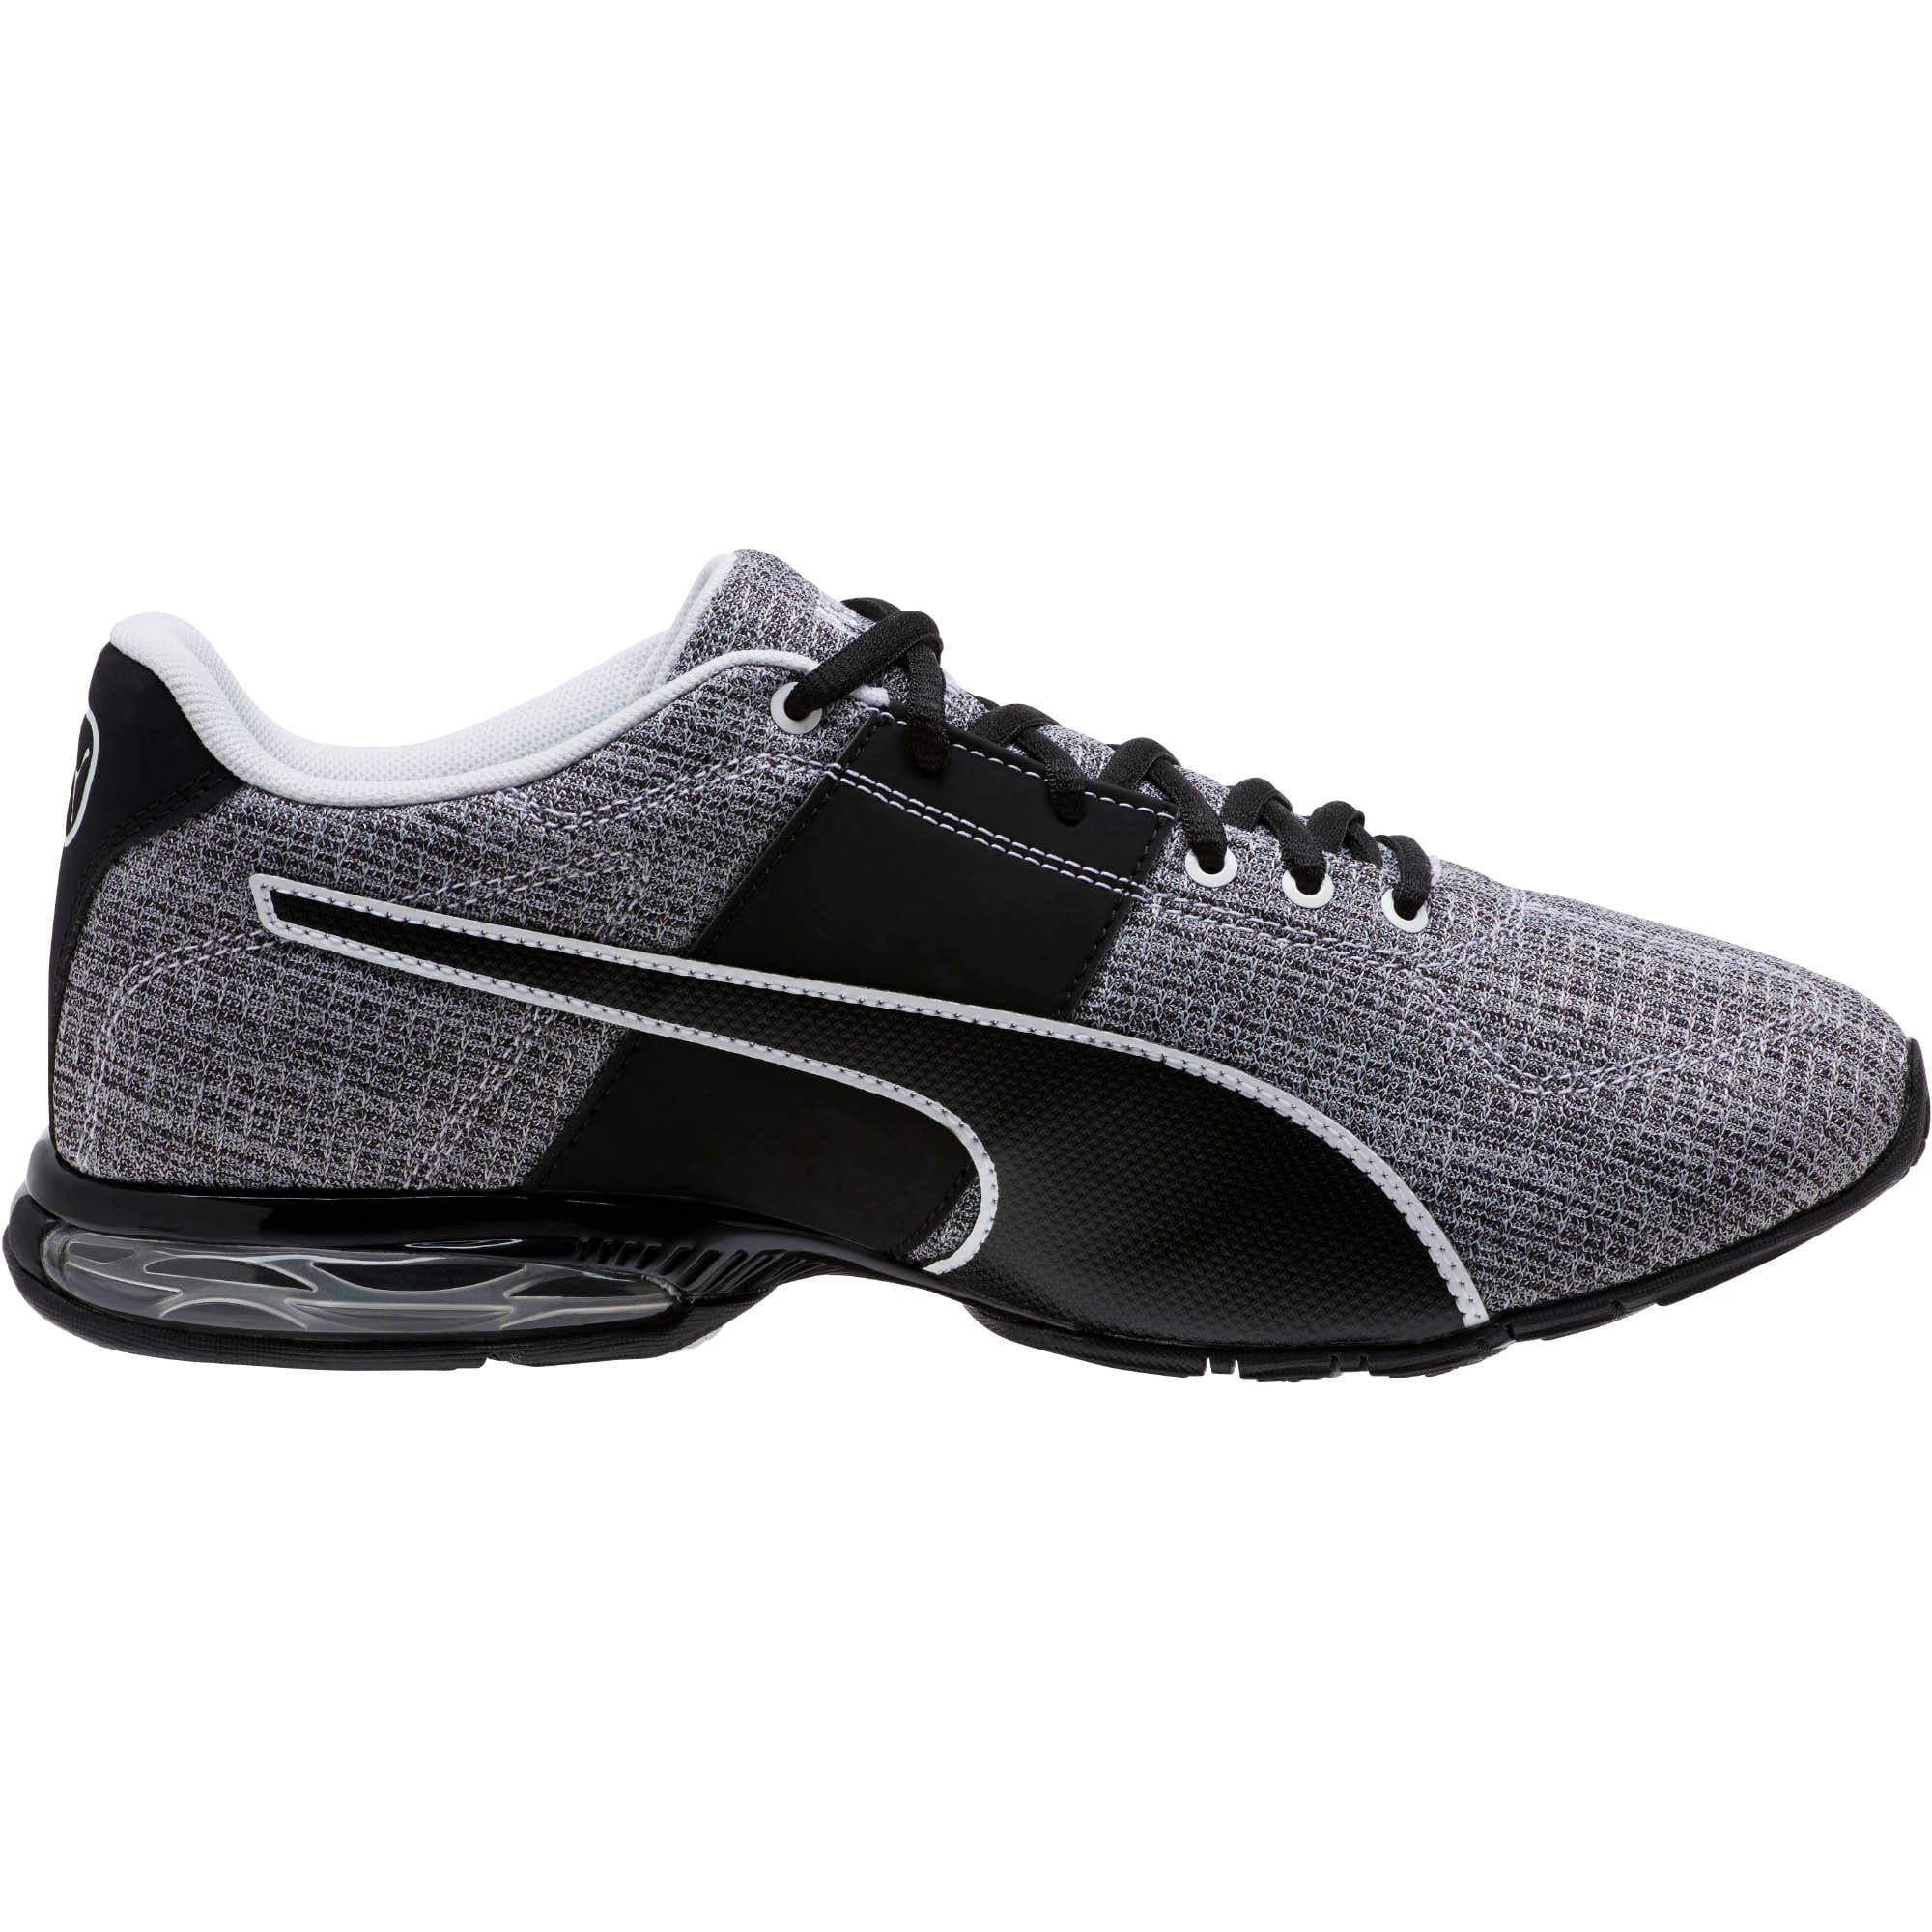 Thumbnail 3 of CELL Surin 2 Heather Men's Running Shoes, Puma Black-Puma White, medium